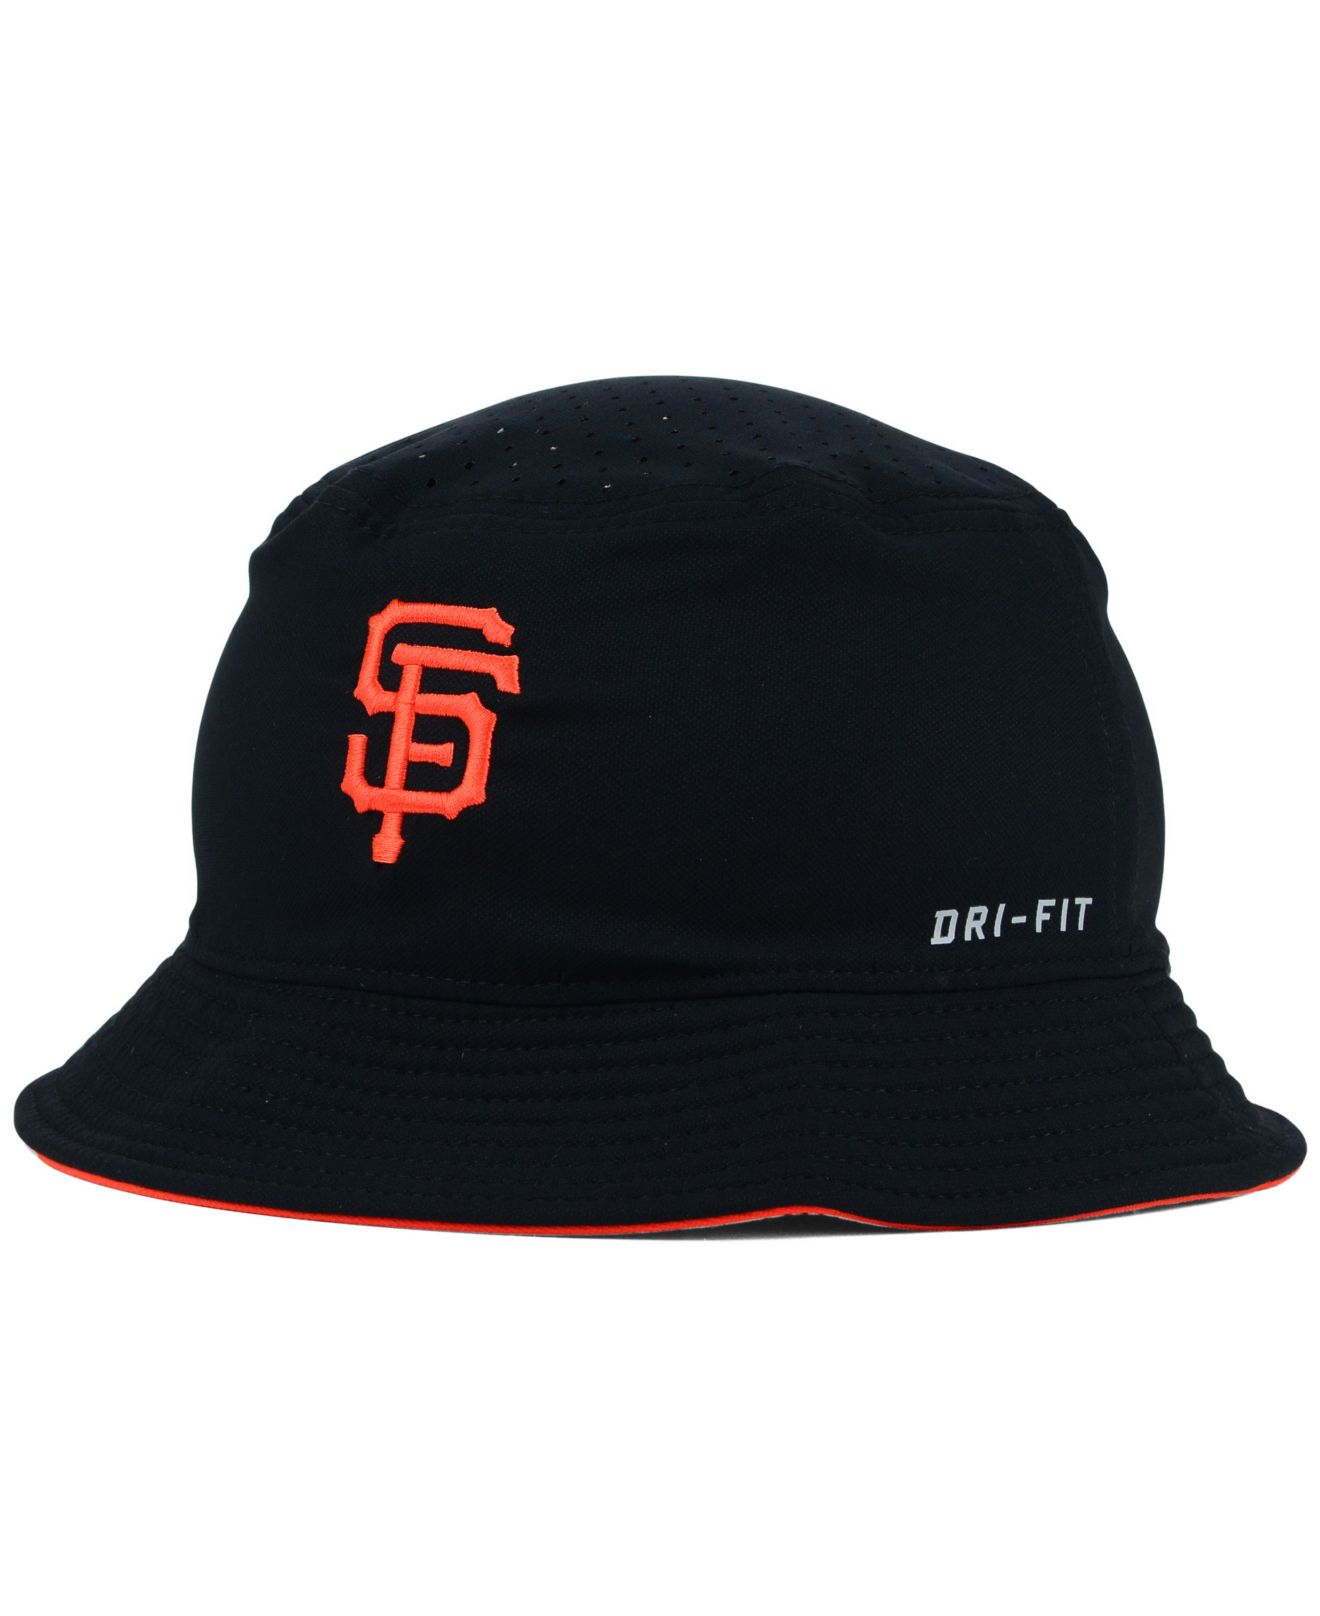 ... switzerland lyst nike san francisco giants vapor dri fit bucket hat in  black 9045d 1c71b ... 3c6cae6a736